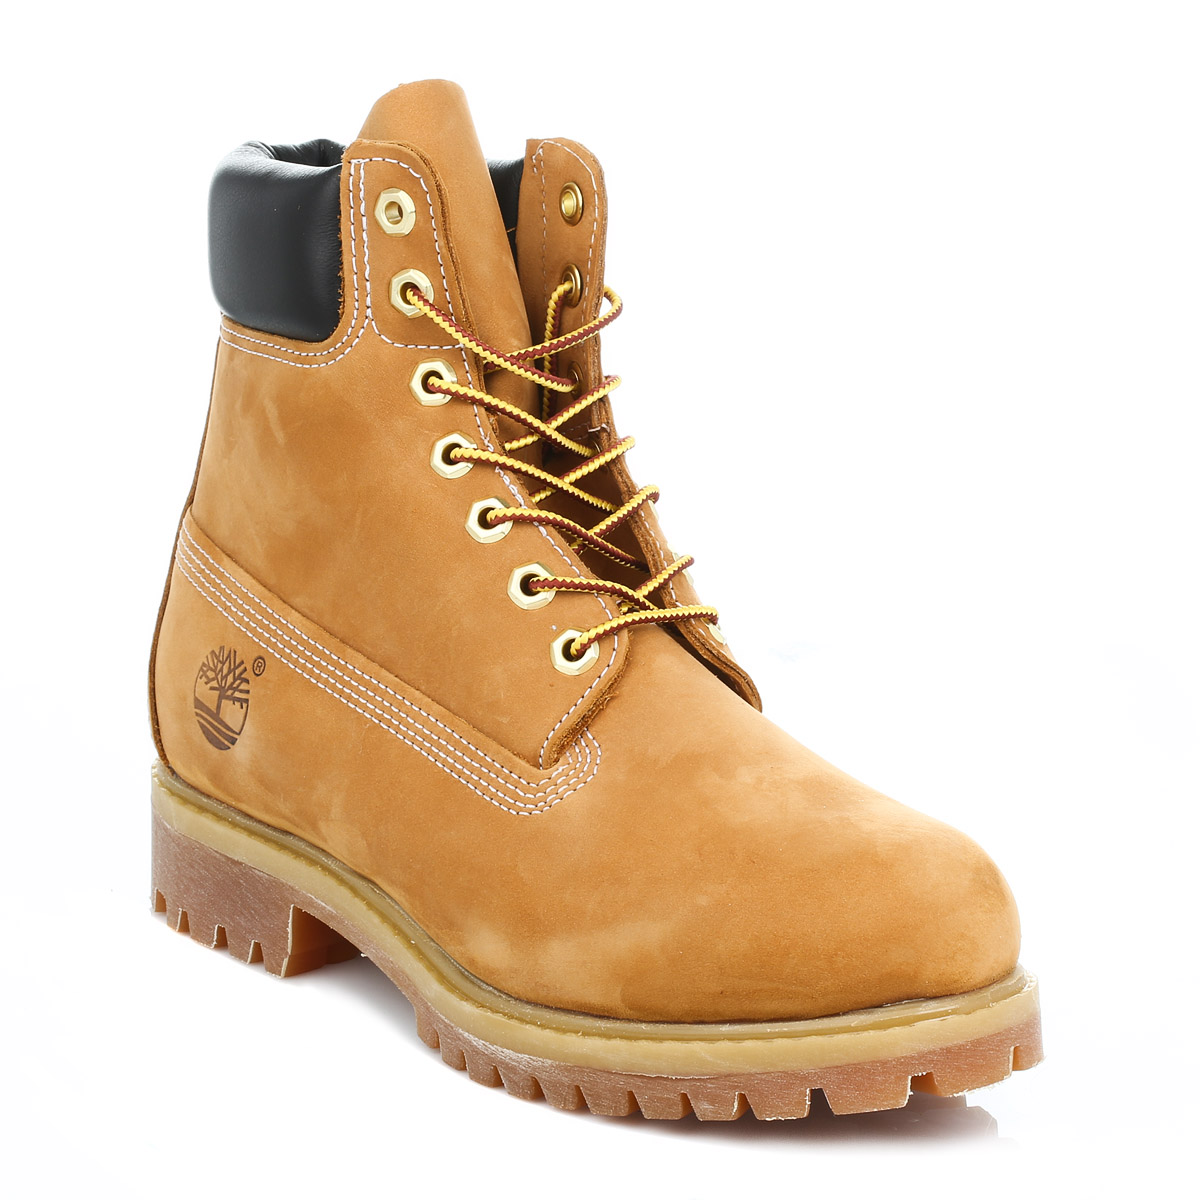 Timberland Mens Wheat Premium 6 Inch Nubuck Leather Boots Winter Shoes